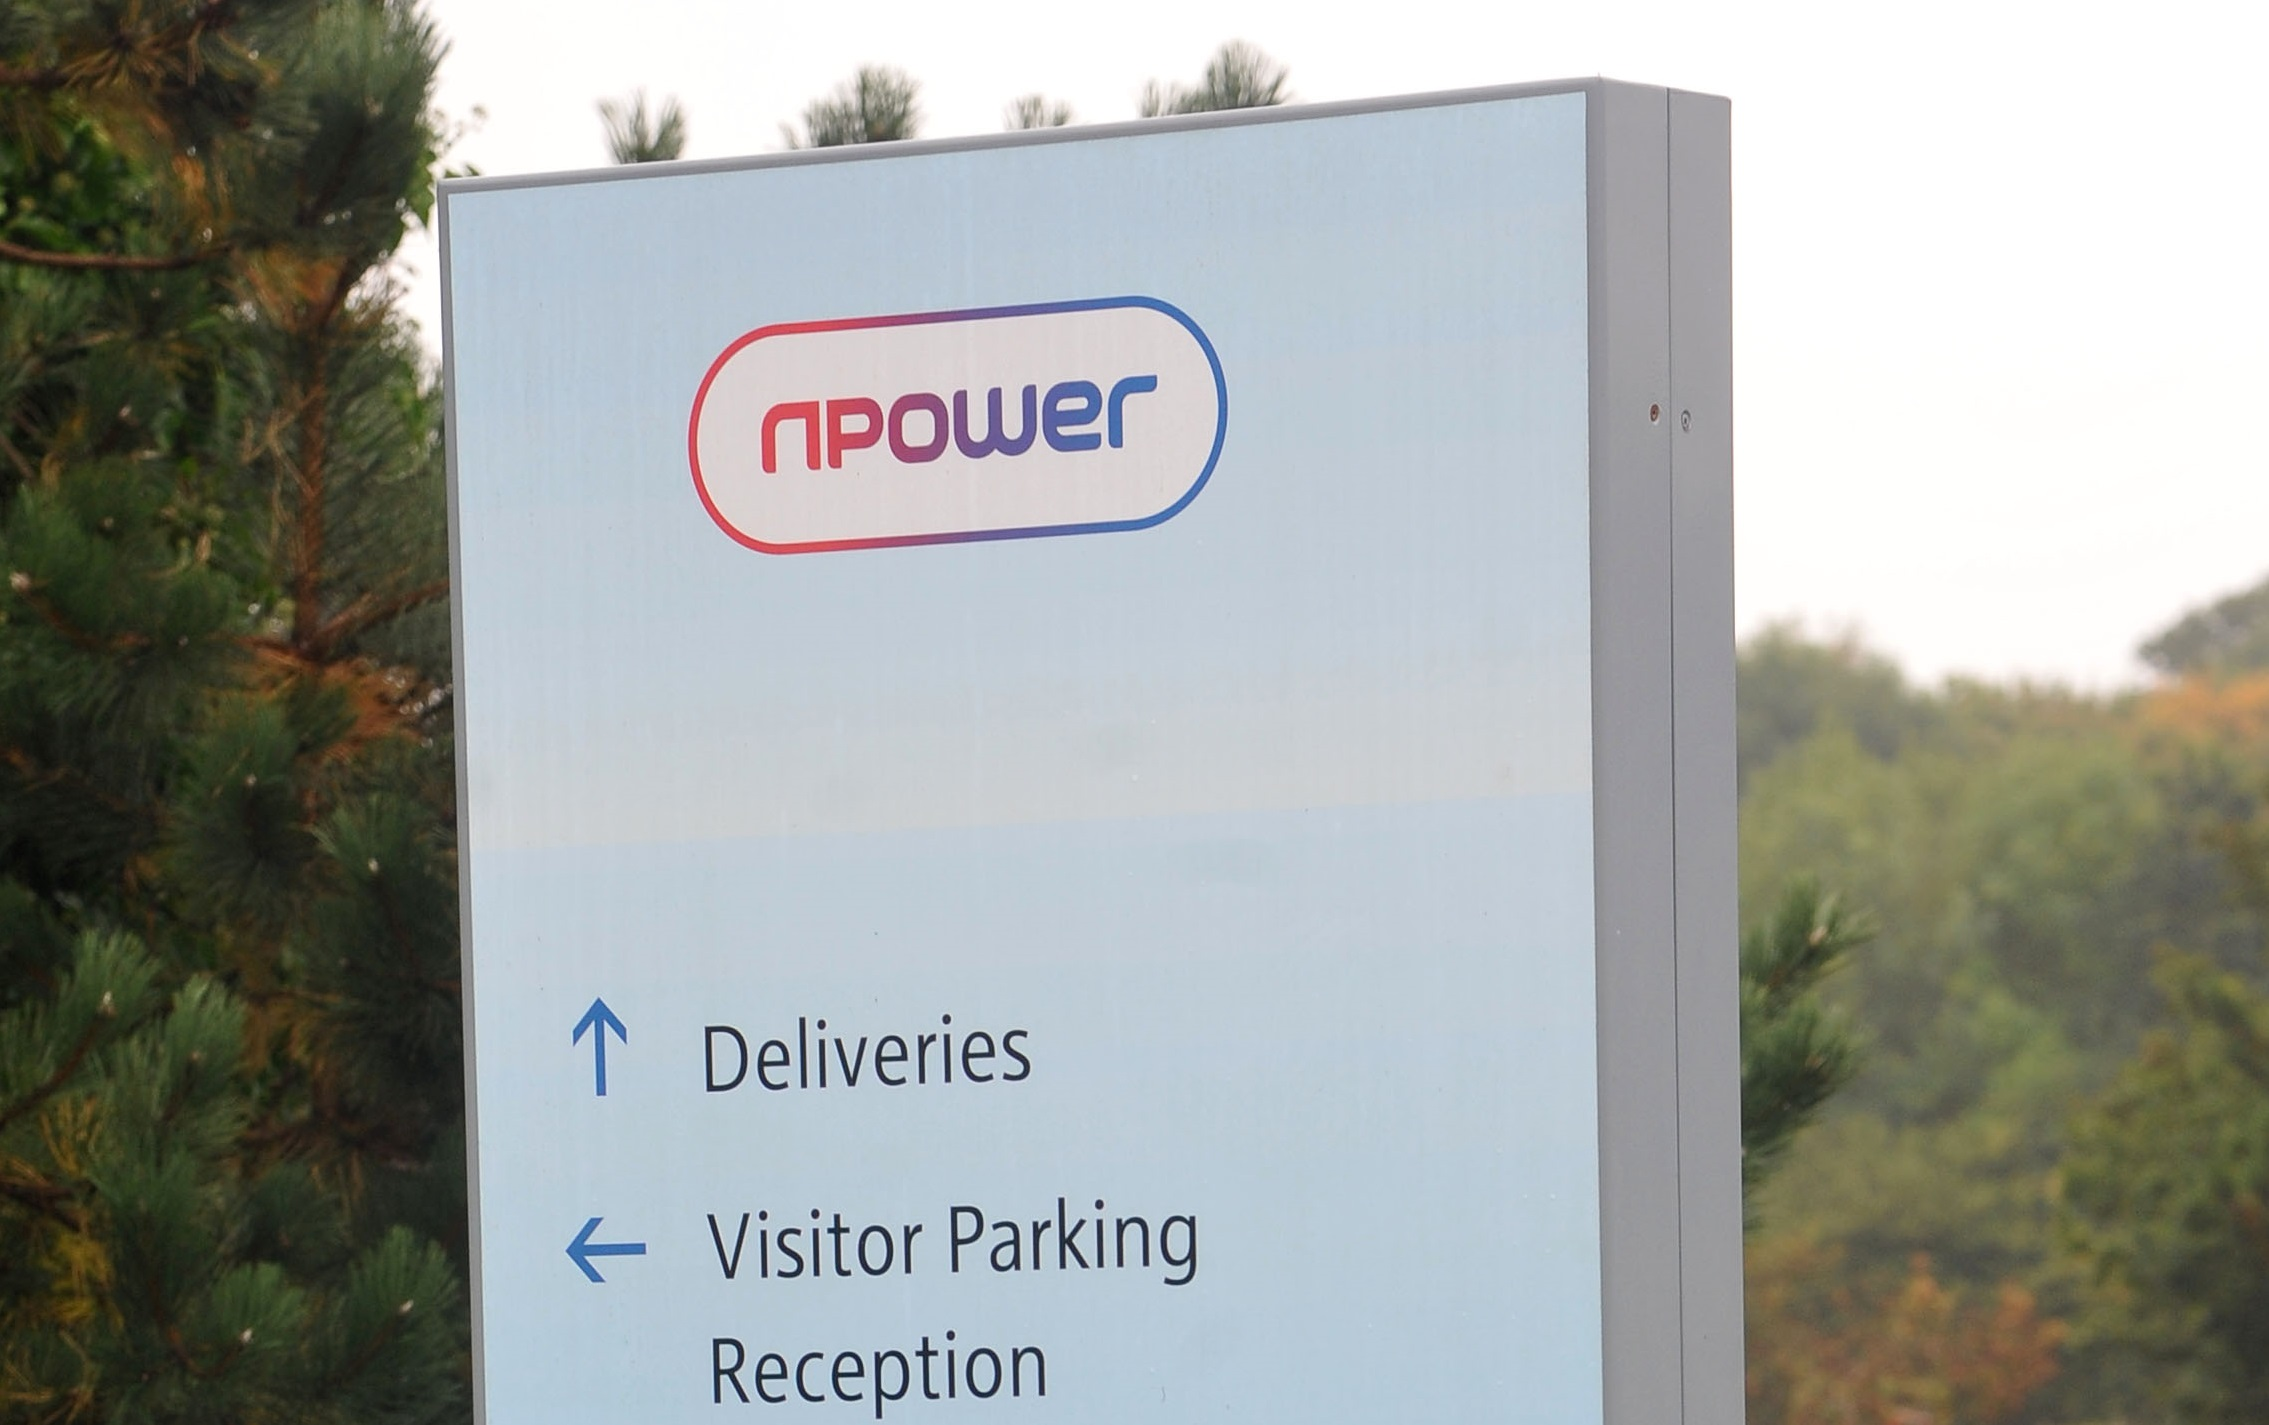 Npower to cut 2400 jobs as it announces a £99 million loss